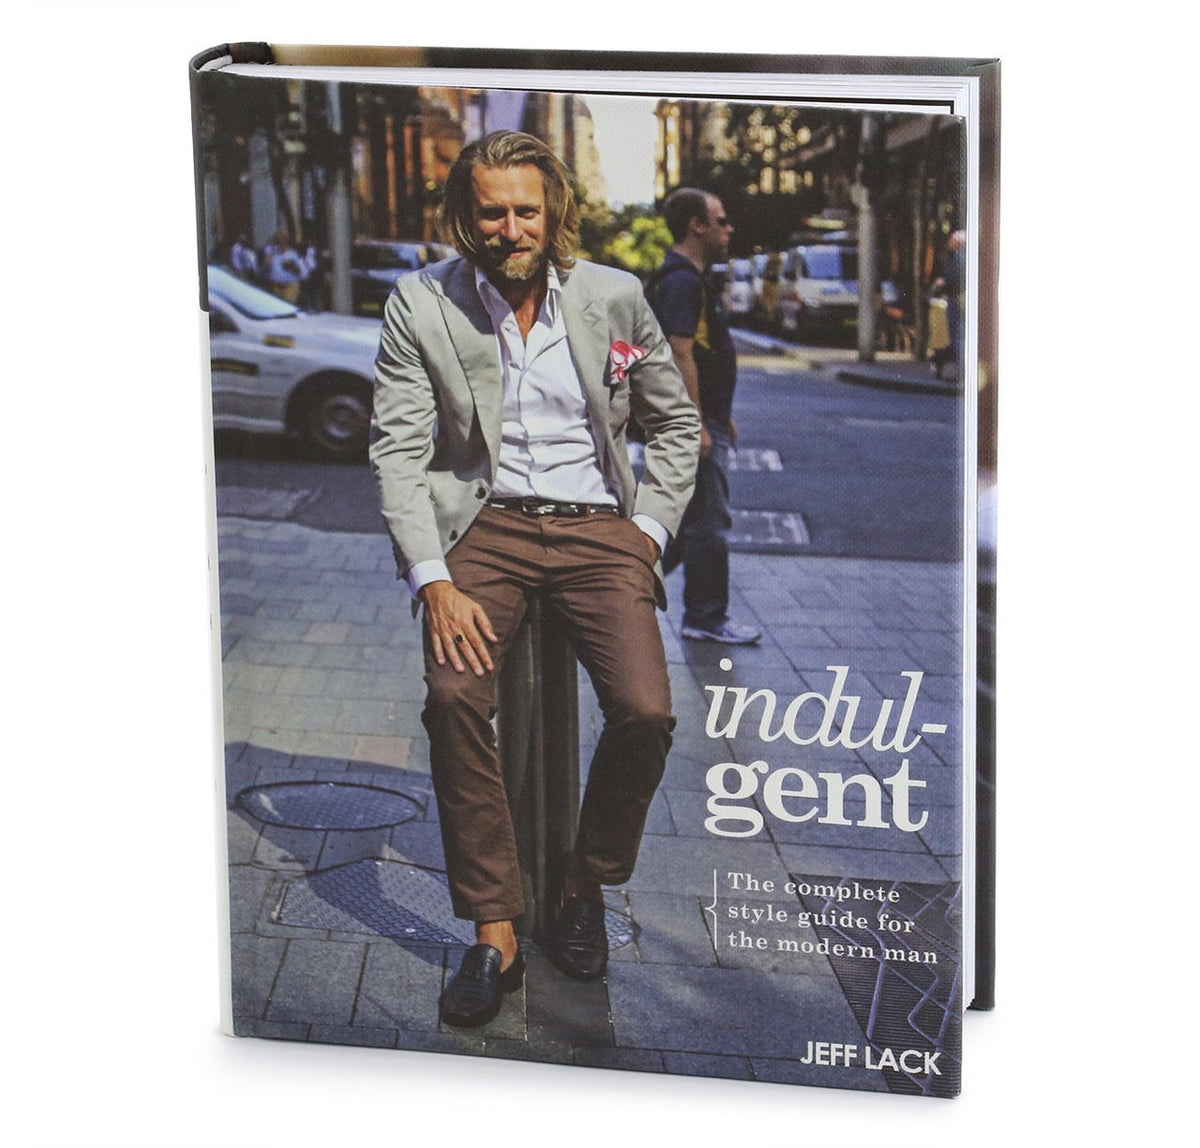 Indulgent: The Complete Style Guide For The Modern Man by Jeff Lack